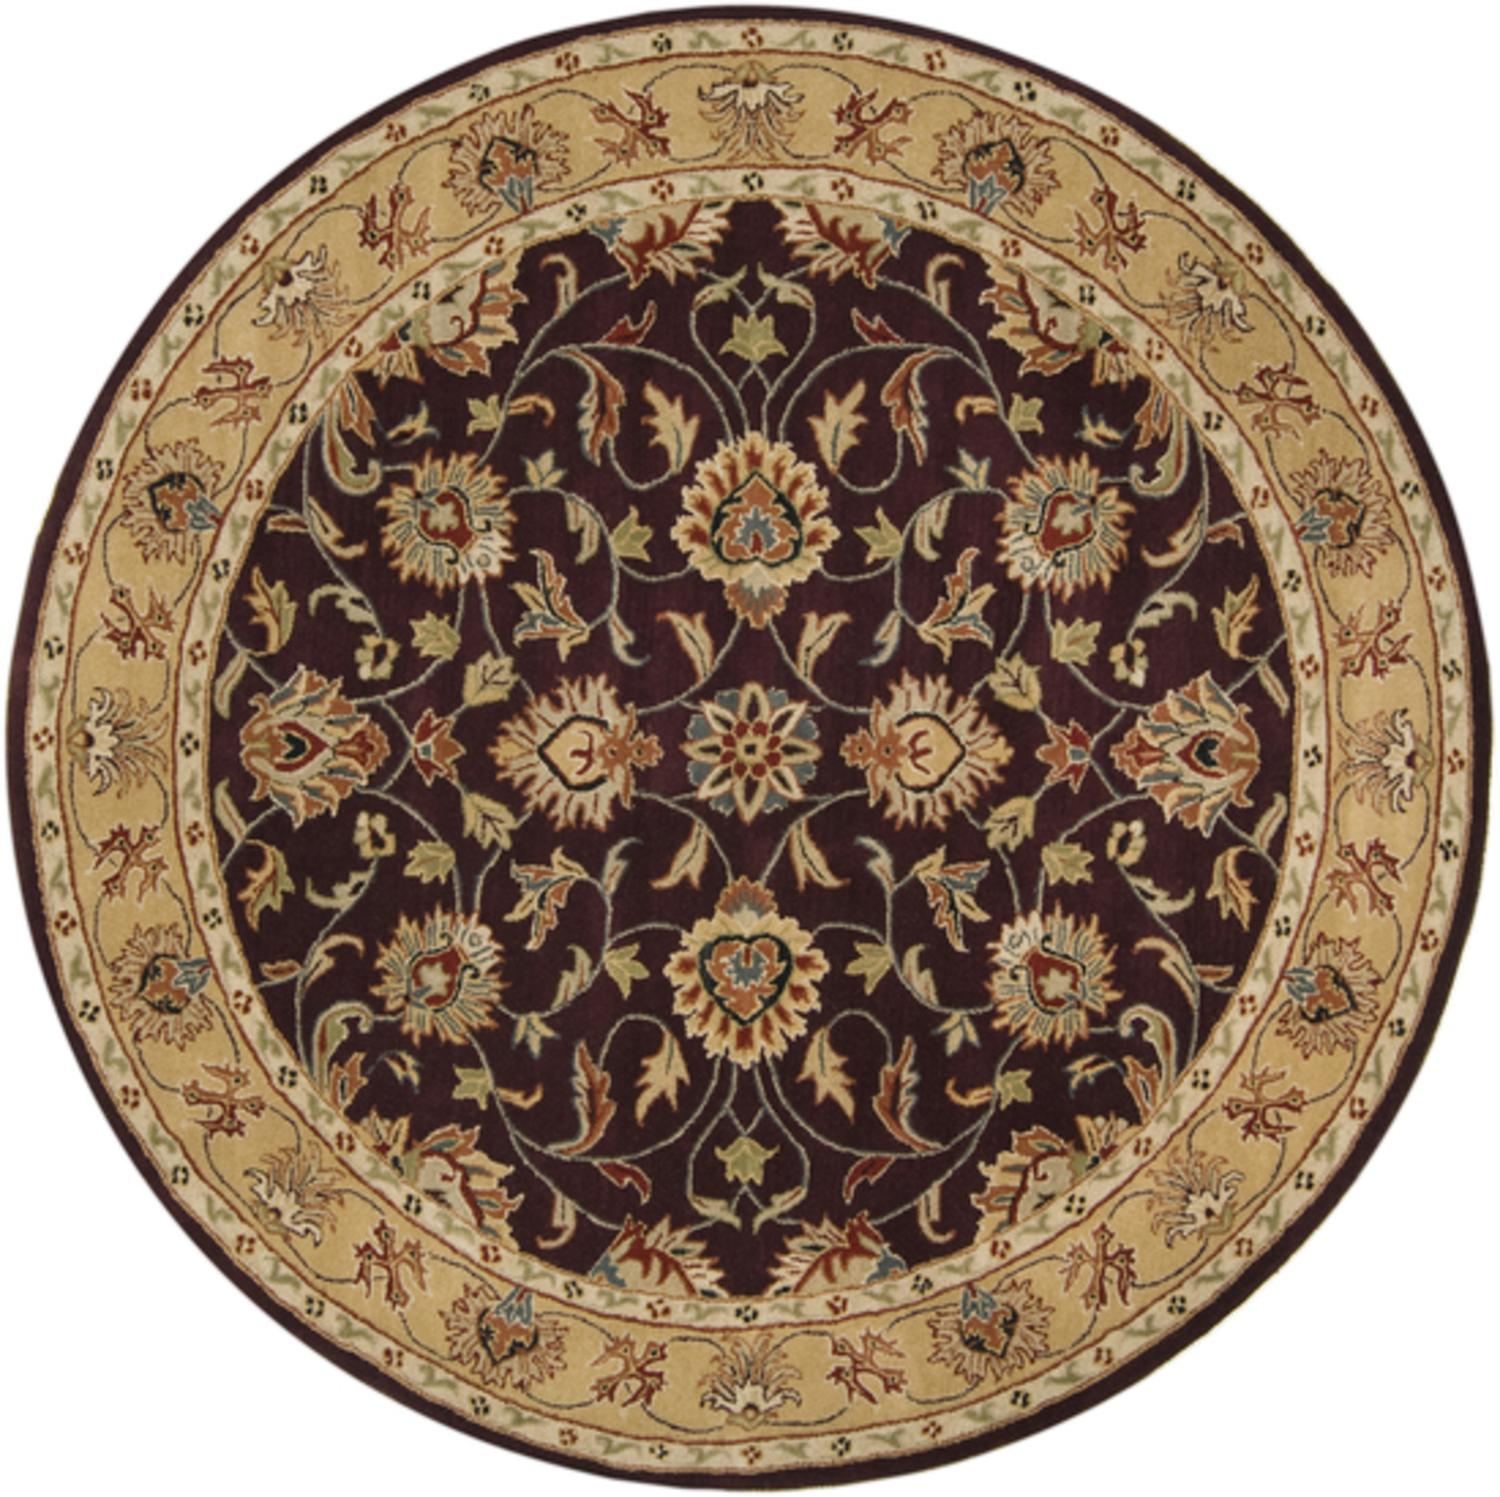 8' Marius Cumin and Sienna Brown Hand Tufted Round Wool Area Throw Rug